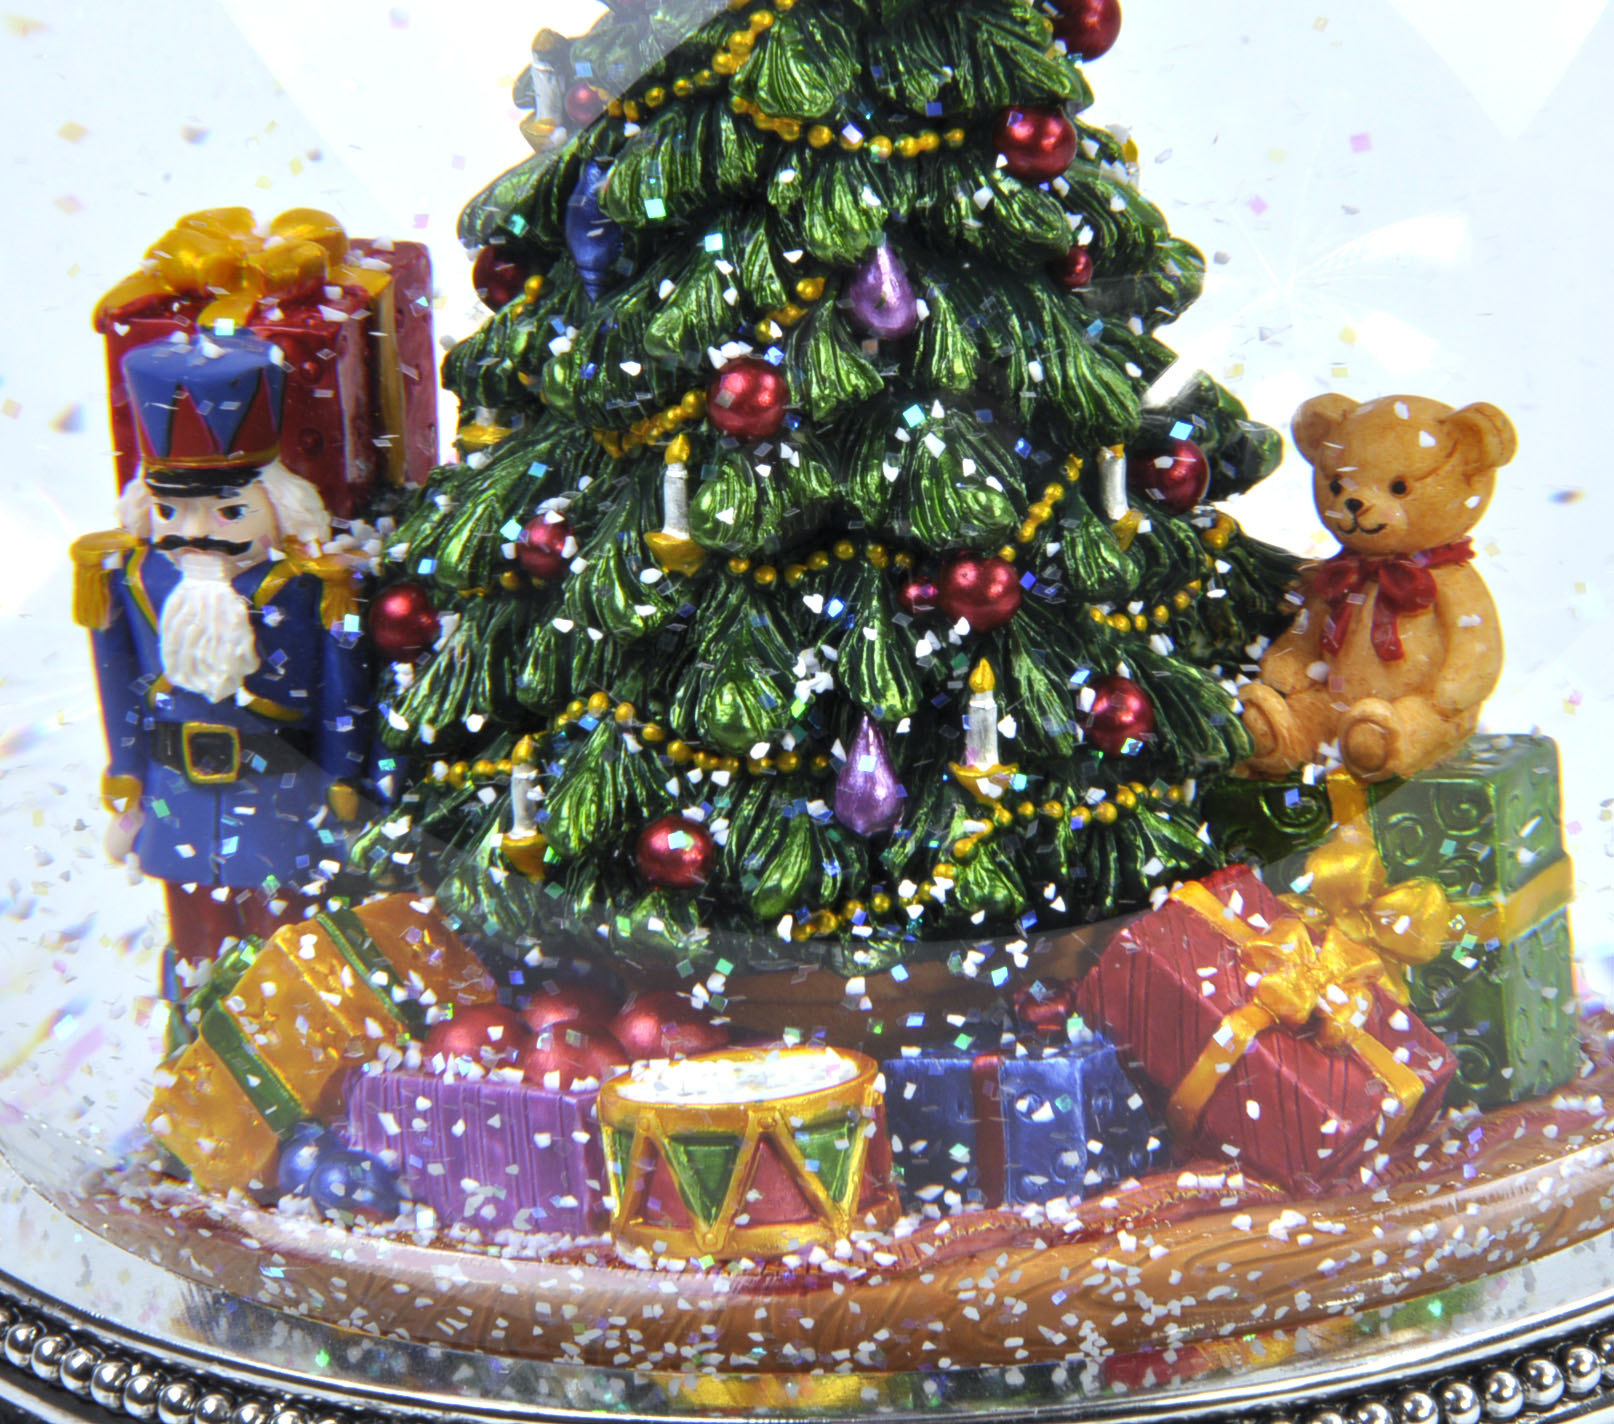 Snowing And Musical Christmas Tree: MusicBox Kingdom 56055 Christmas Tree Snow Globe Music Box